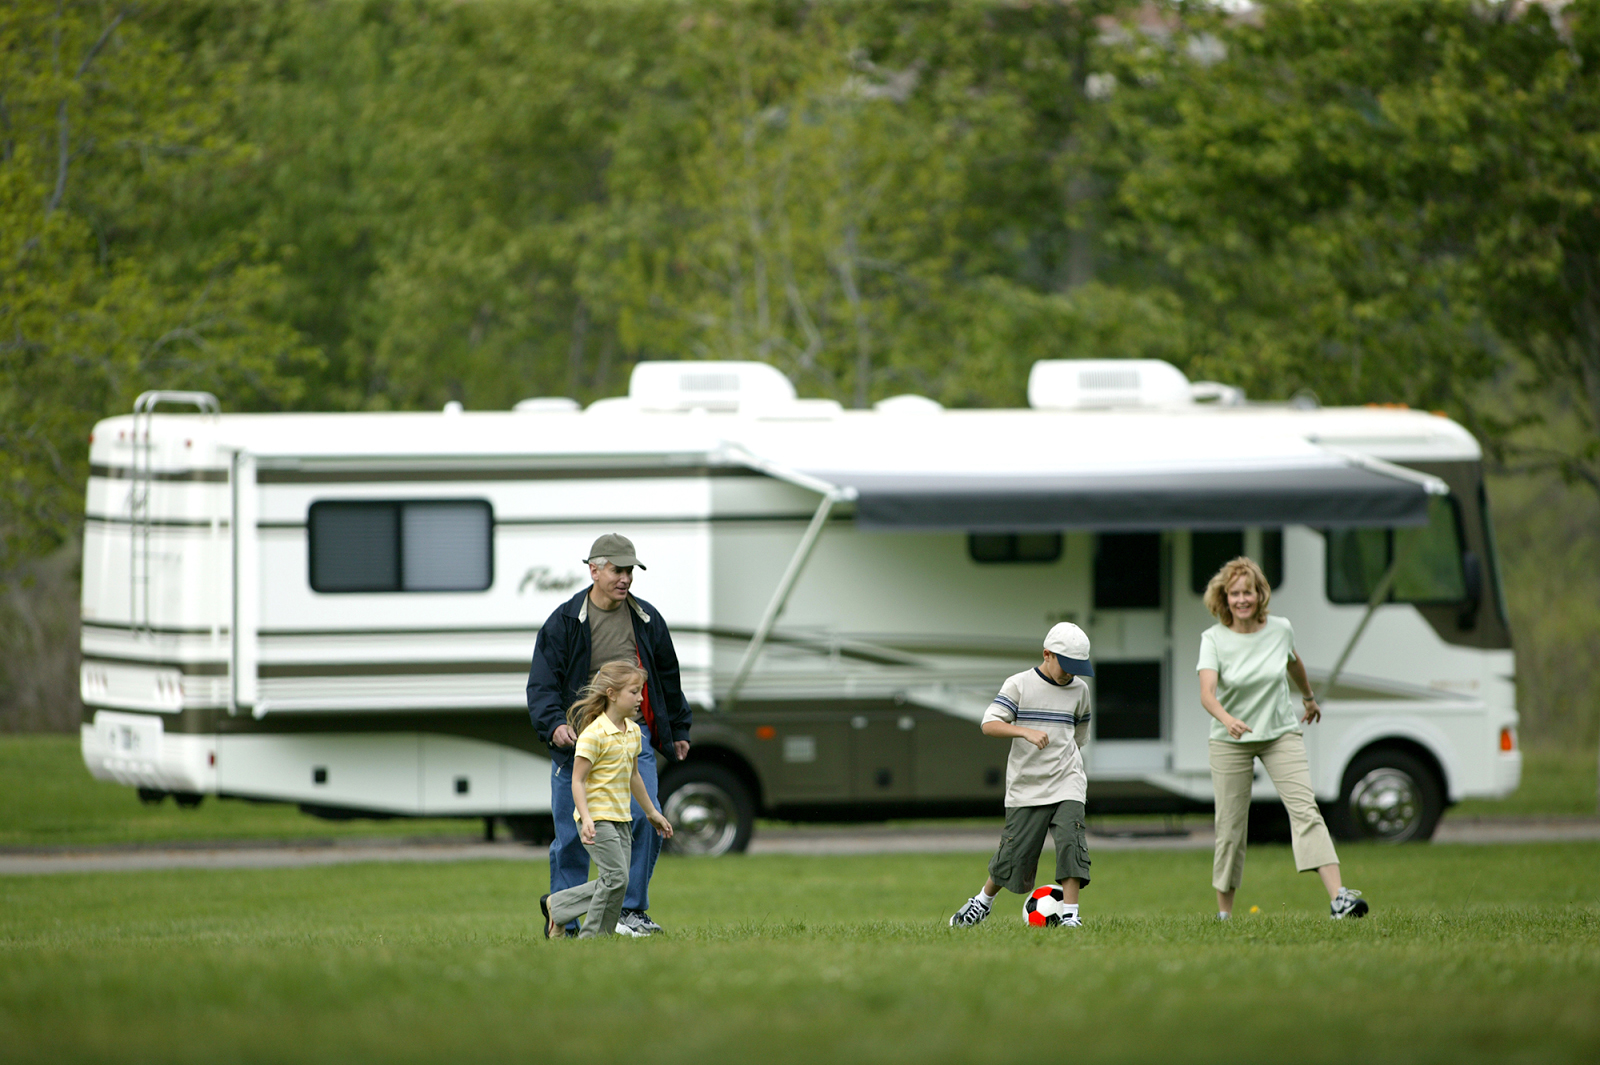 Family Playing By Trailer Rental